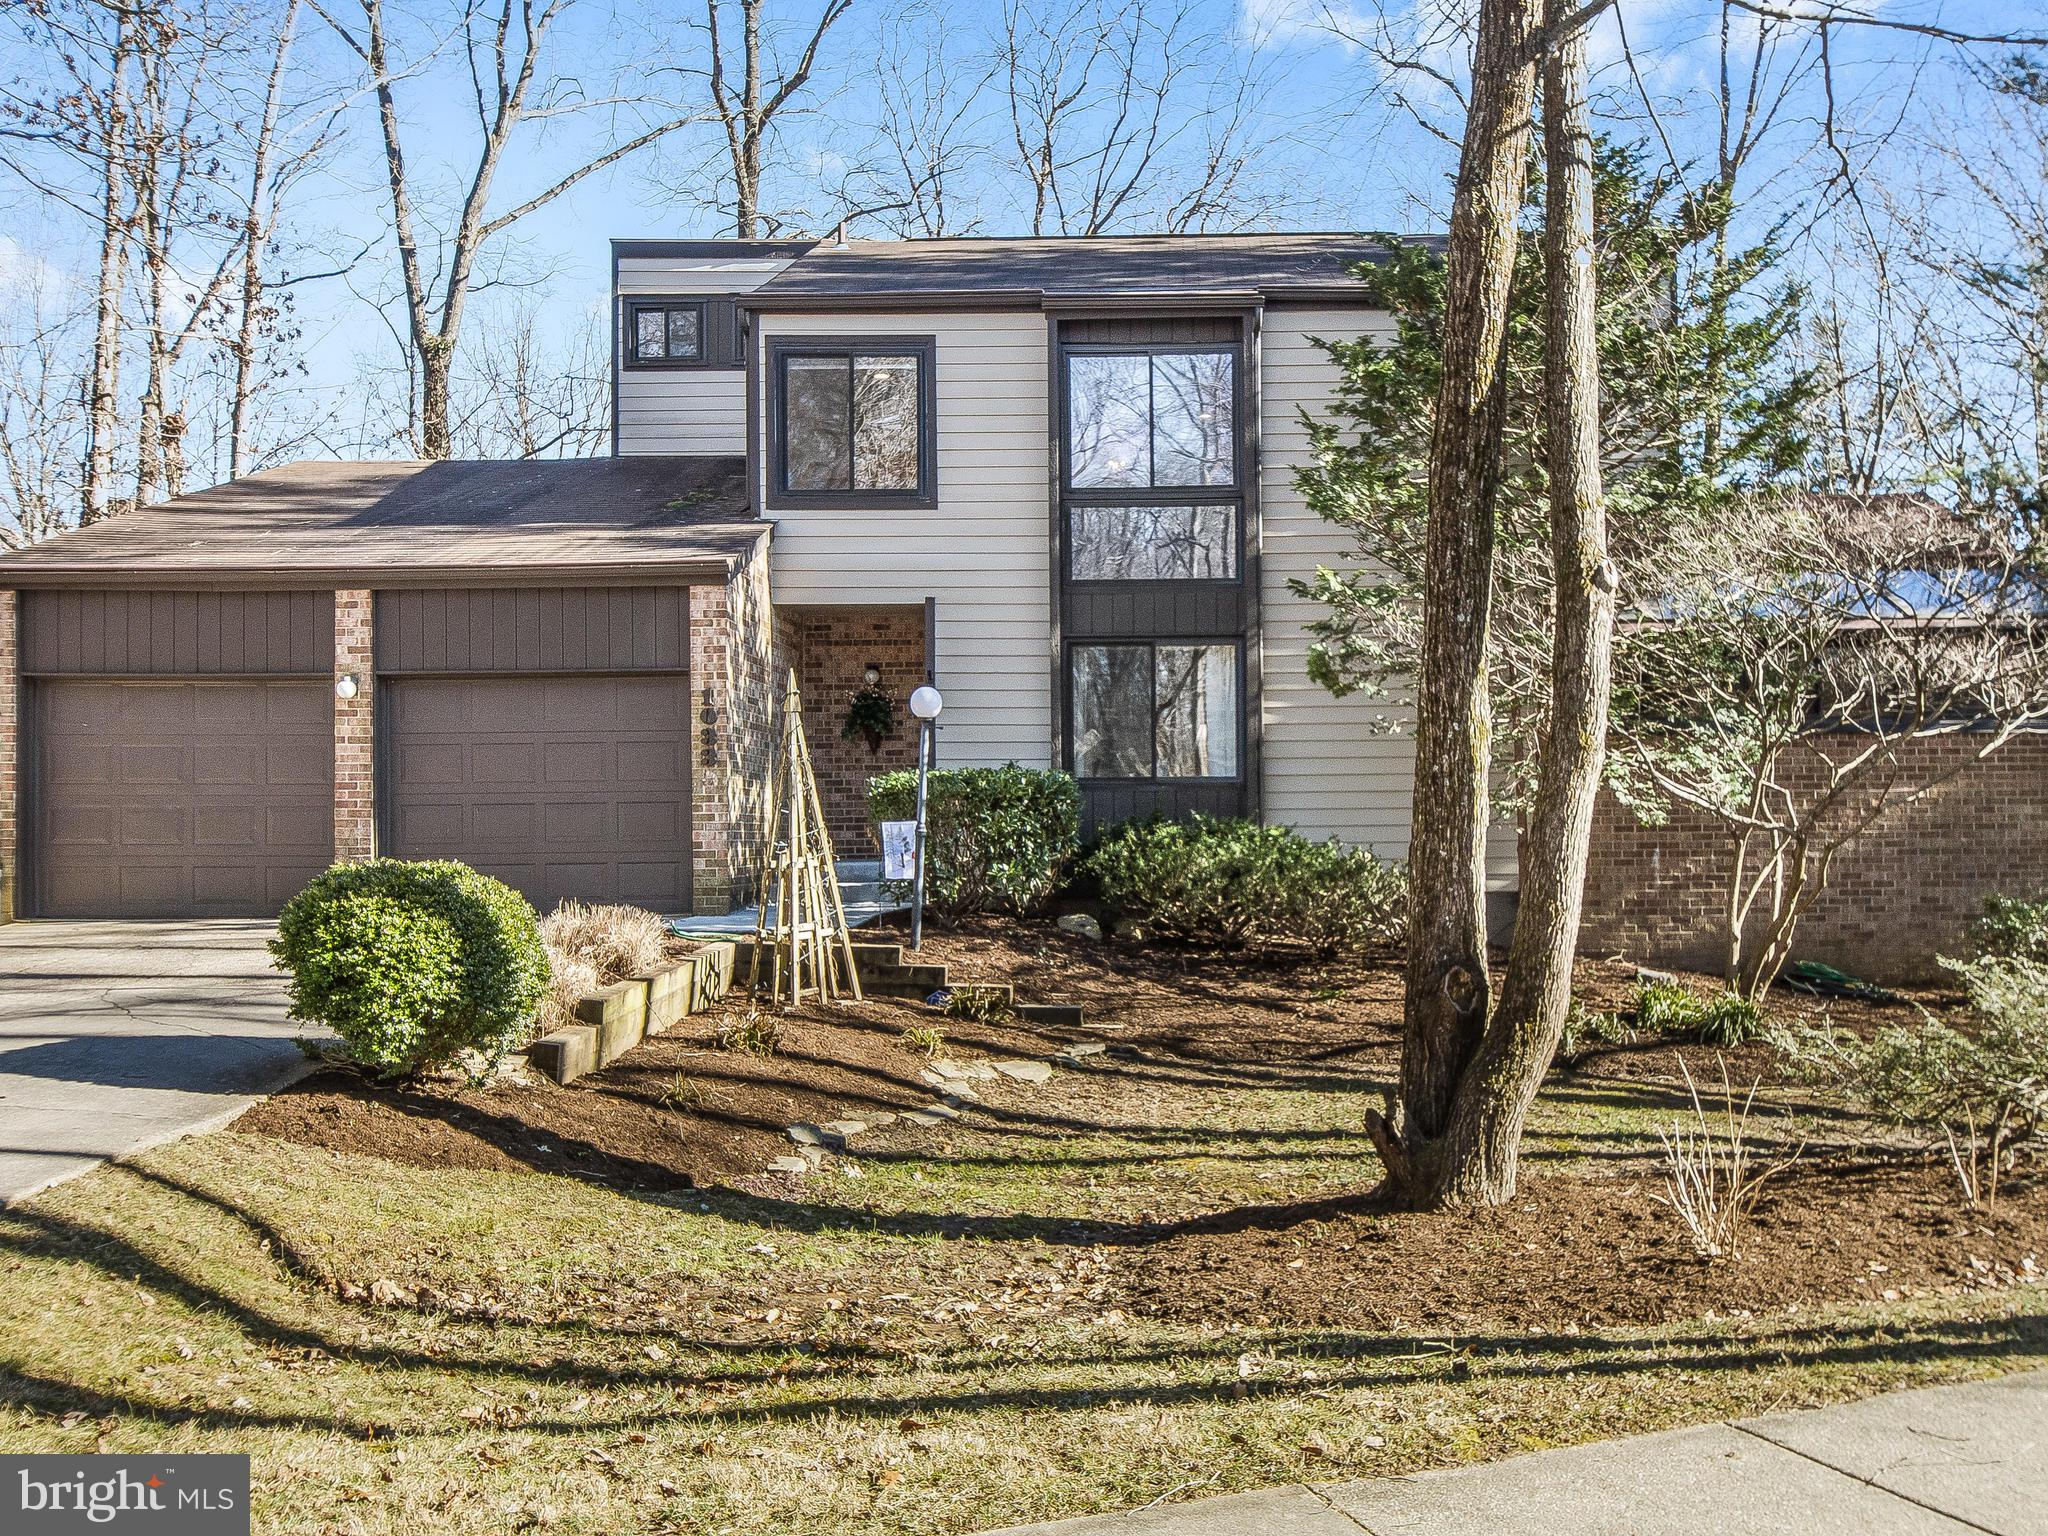 10330 LAUNCELOT LANE, COLUMBIA, MD 21044